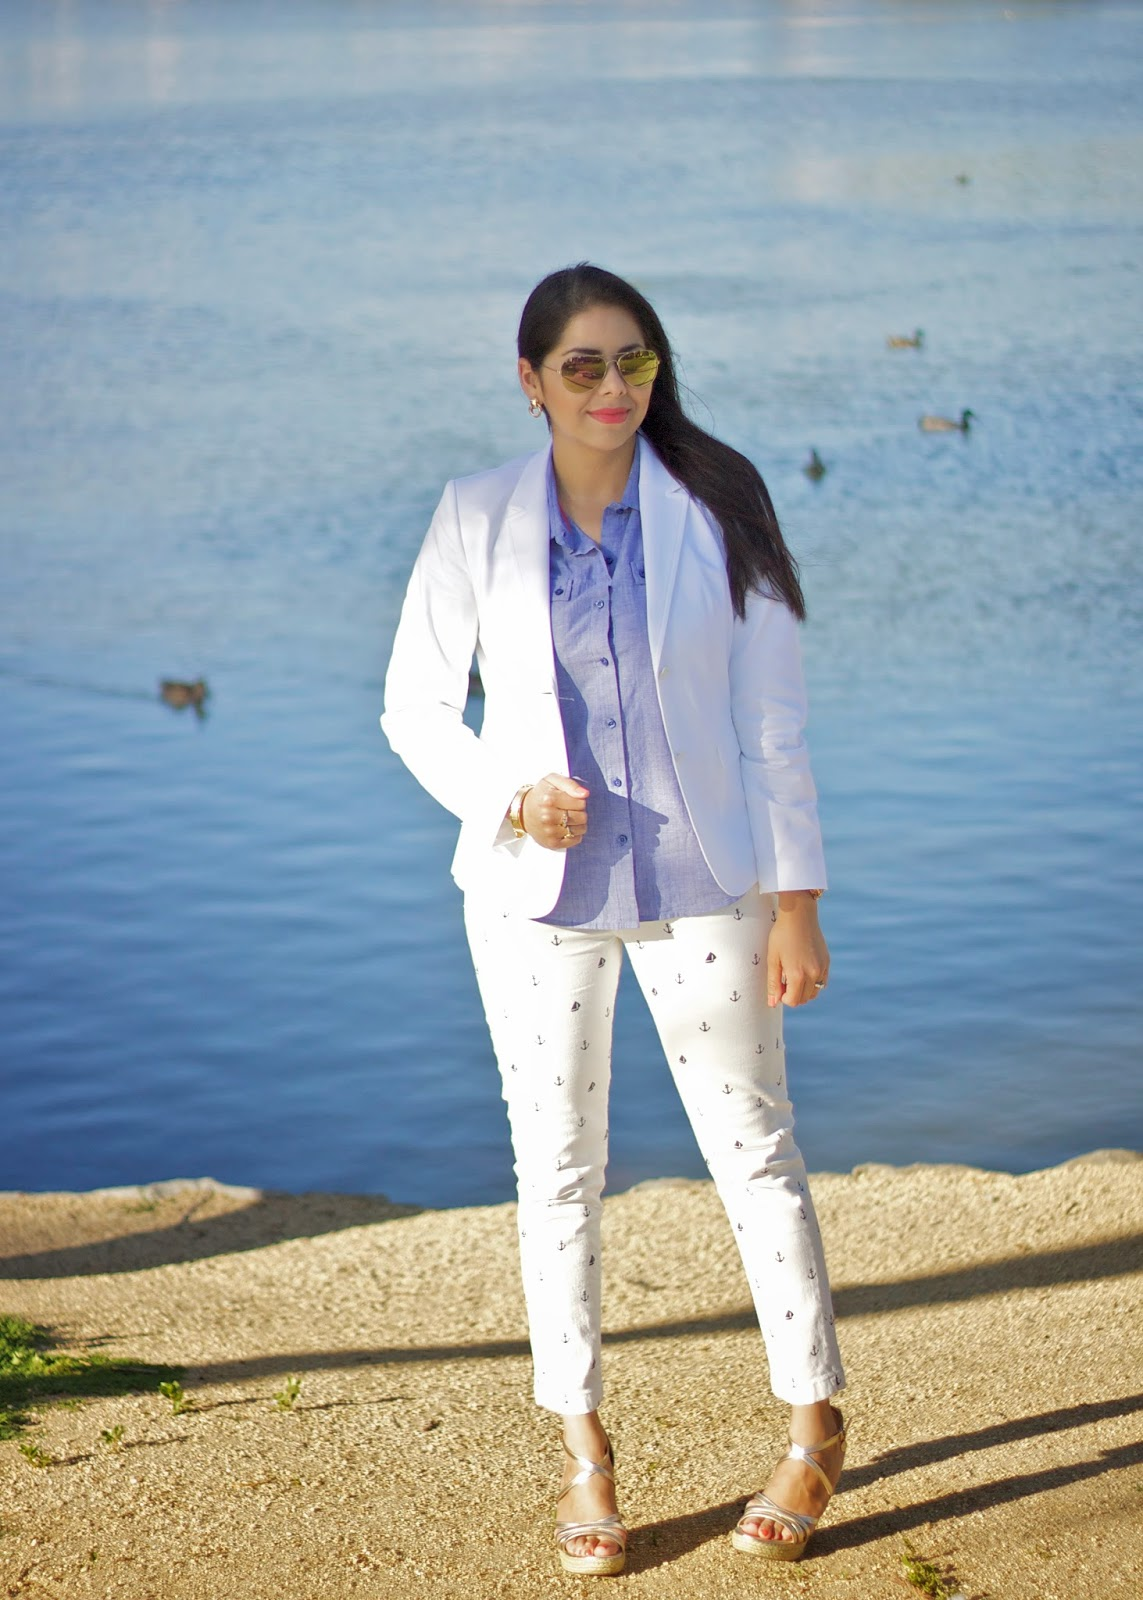 Tommy Hilfiger Summer white look, anchor printed pants, sailor themed pants